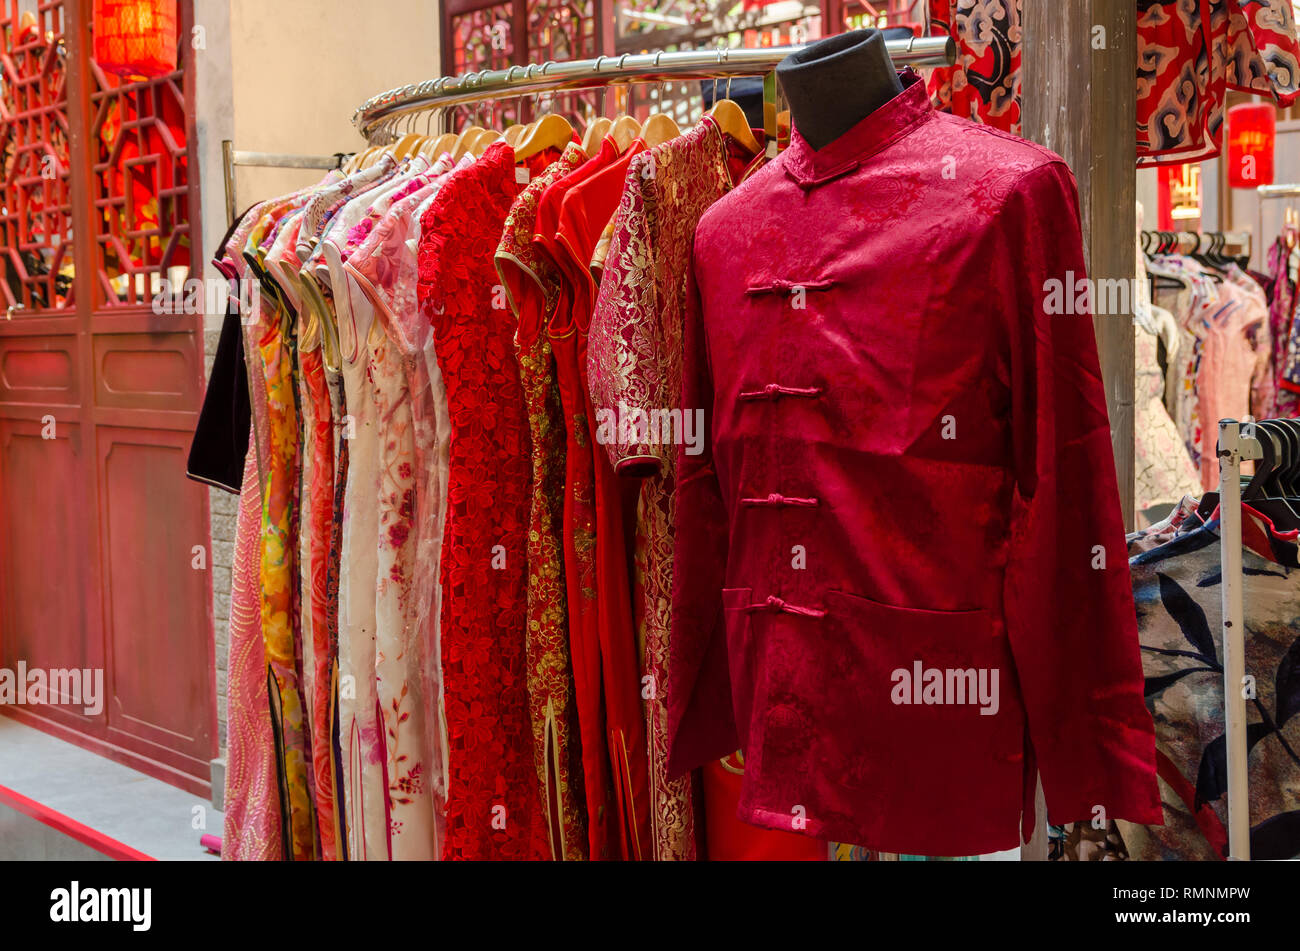 Colorful traditional chinese costumes hanging for sale during Chinese New Year. - Stock Image